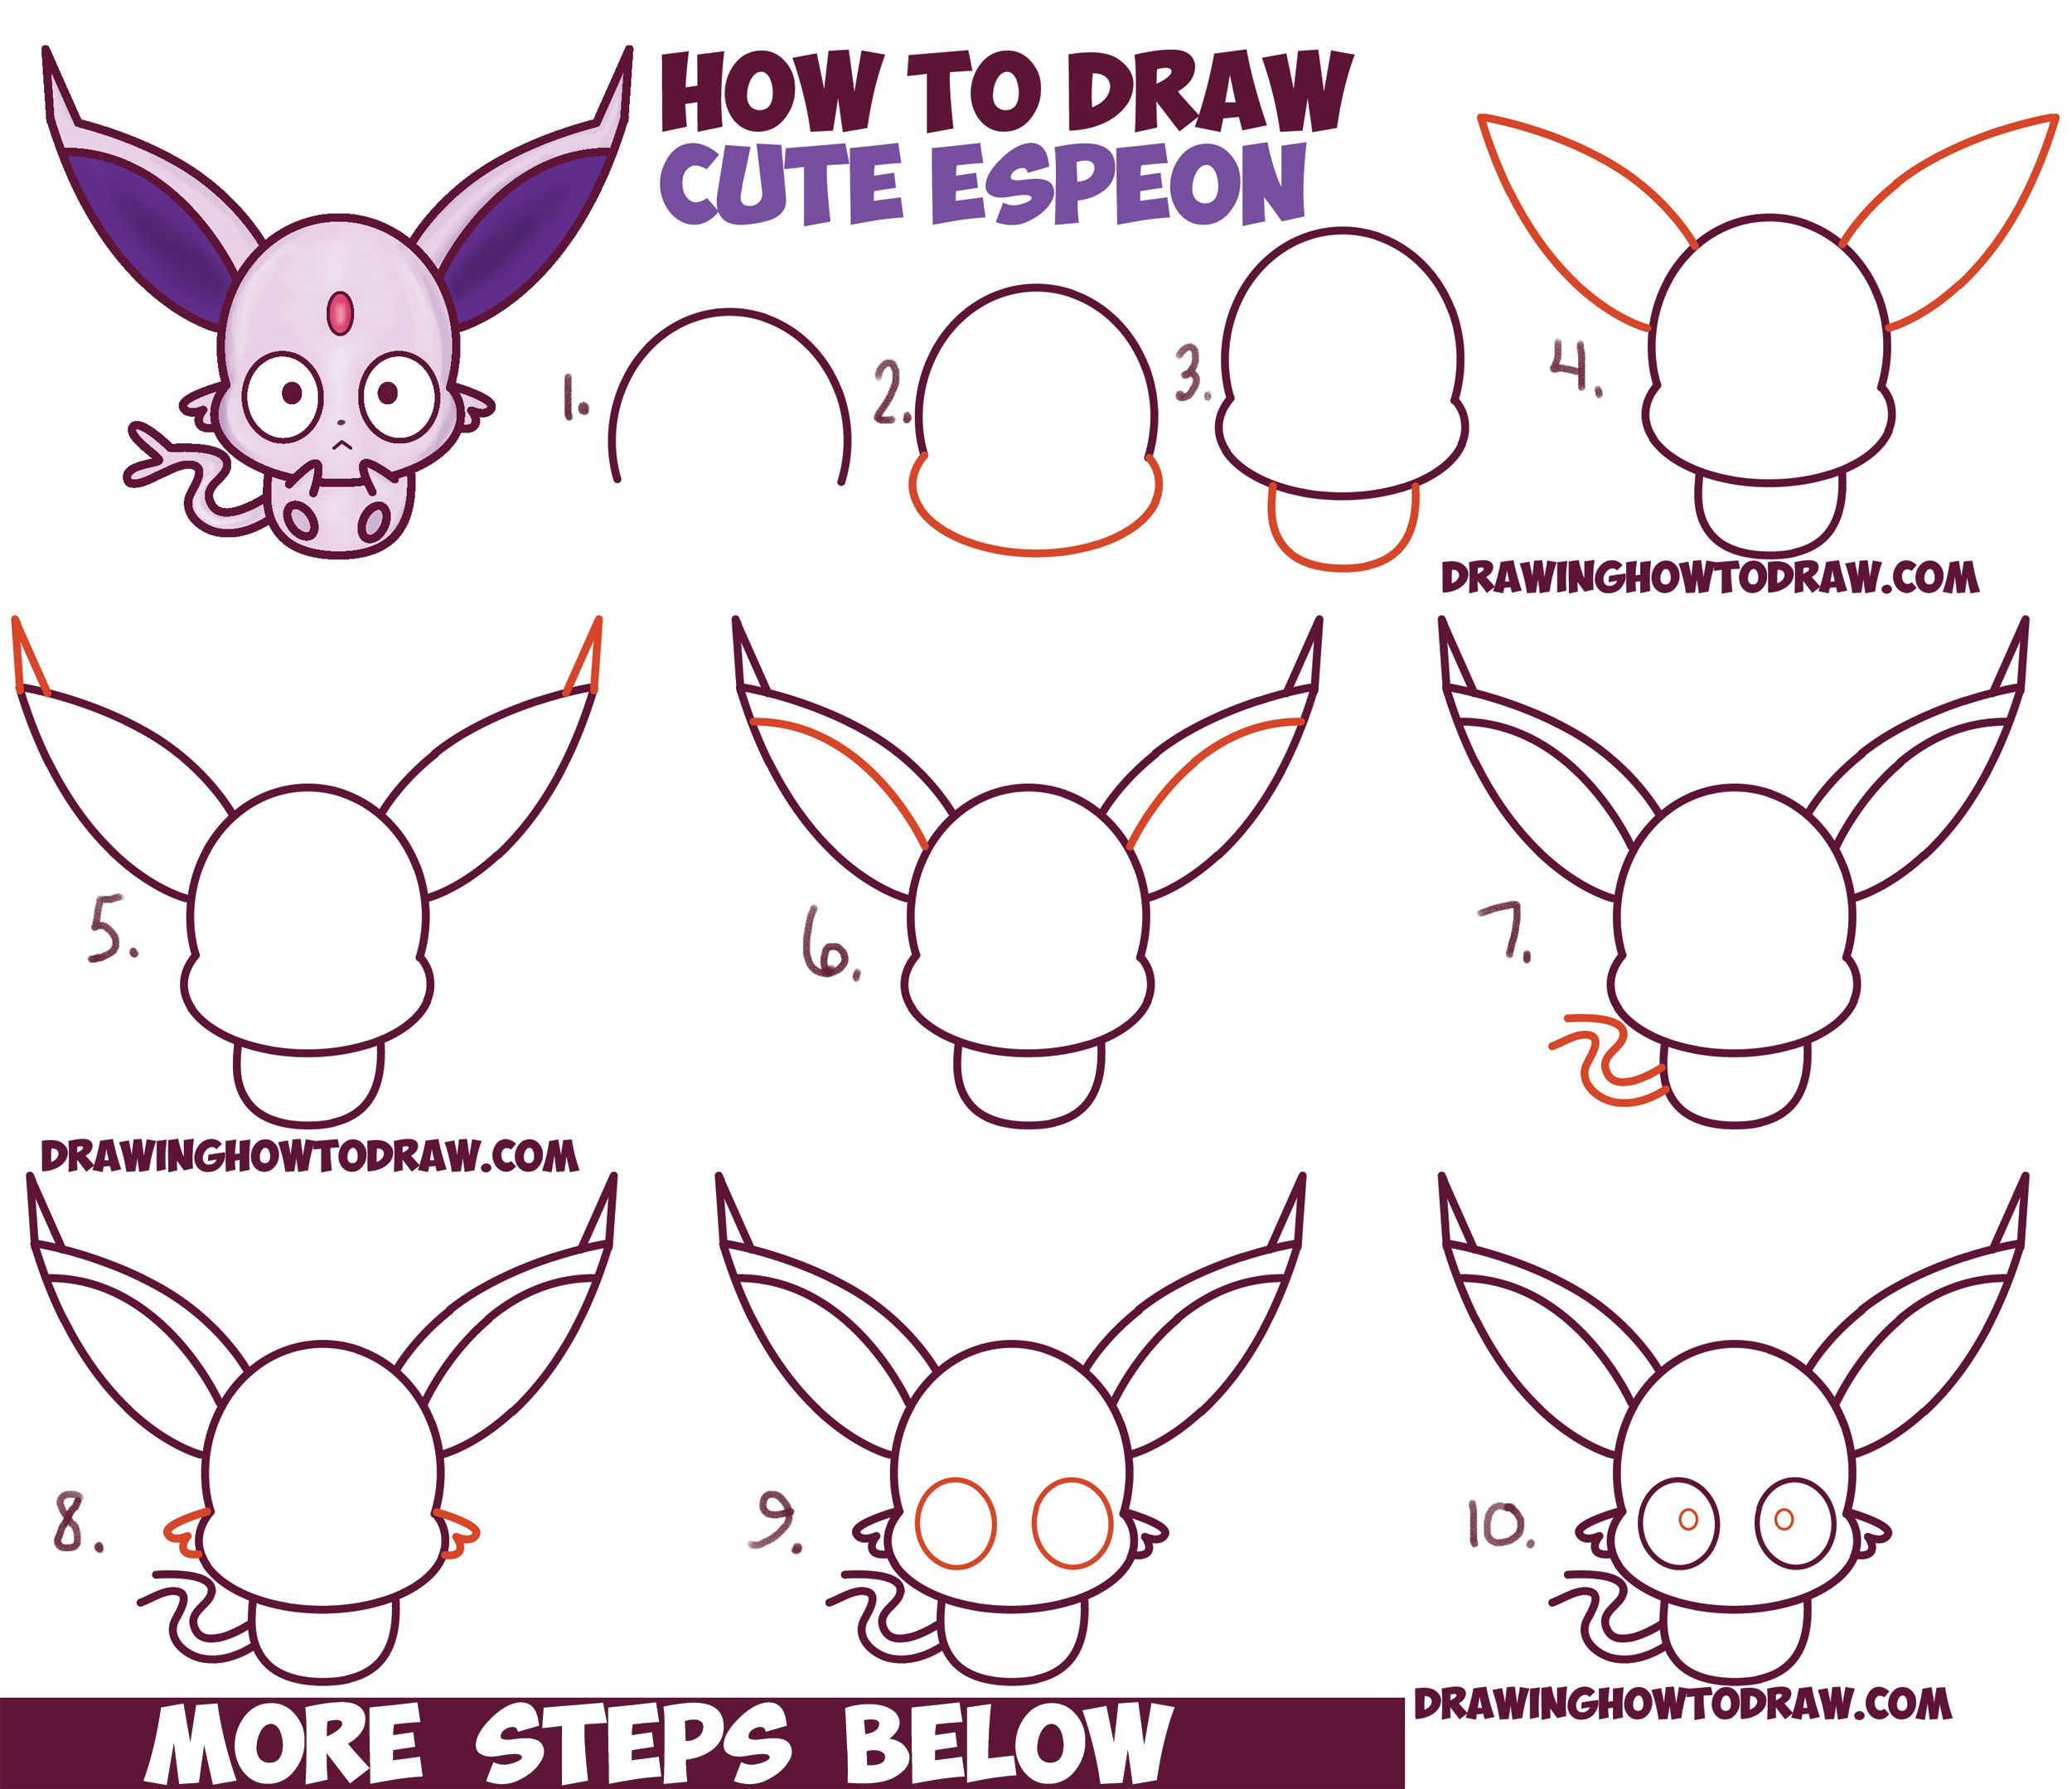 How To Draw Cute Kawaii / Chibi Espeon From Pokemon Easy